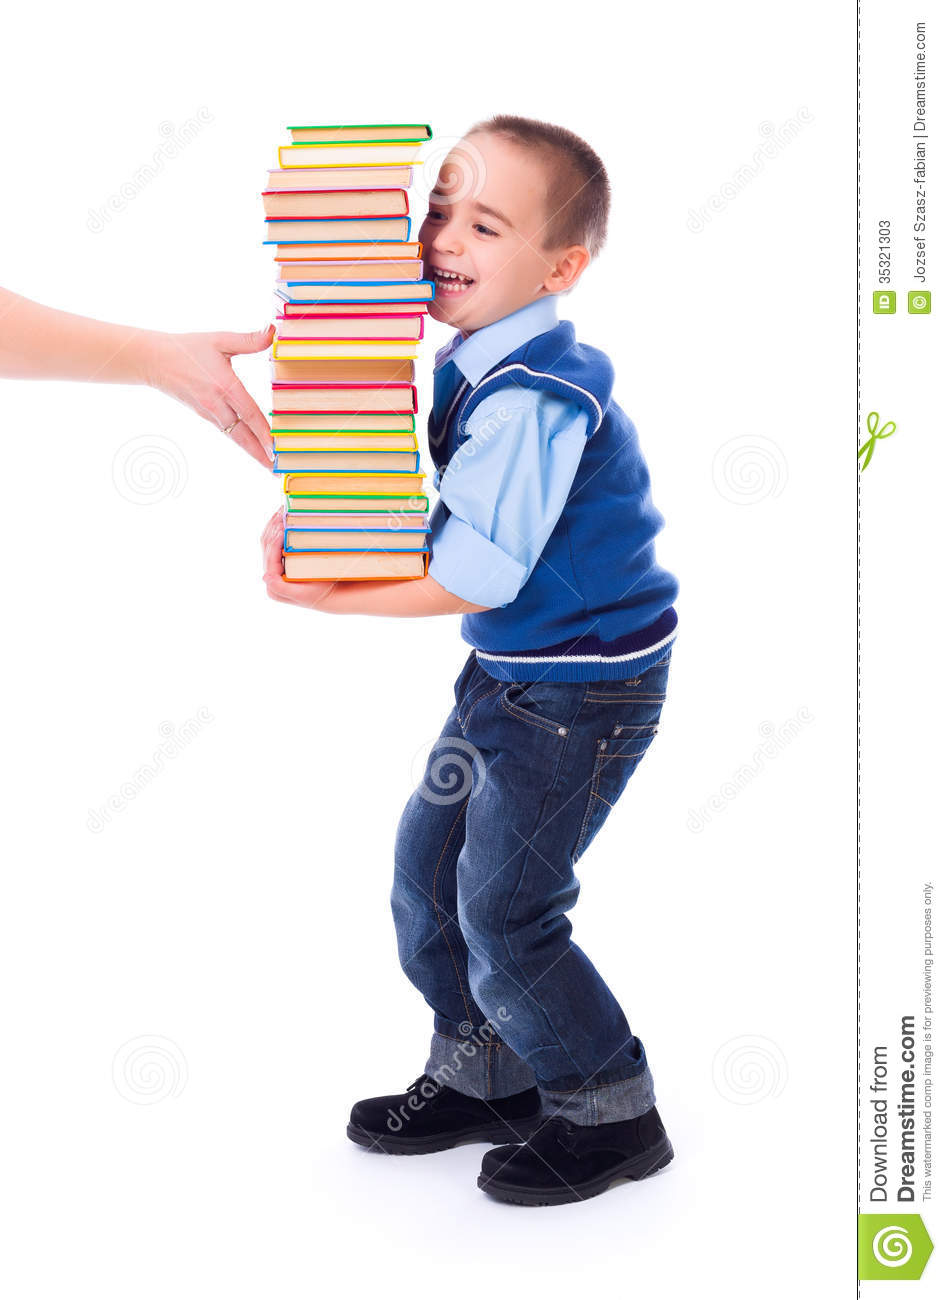 Lifting Stack Books